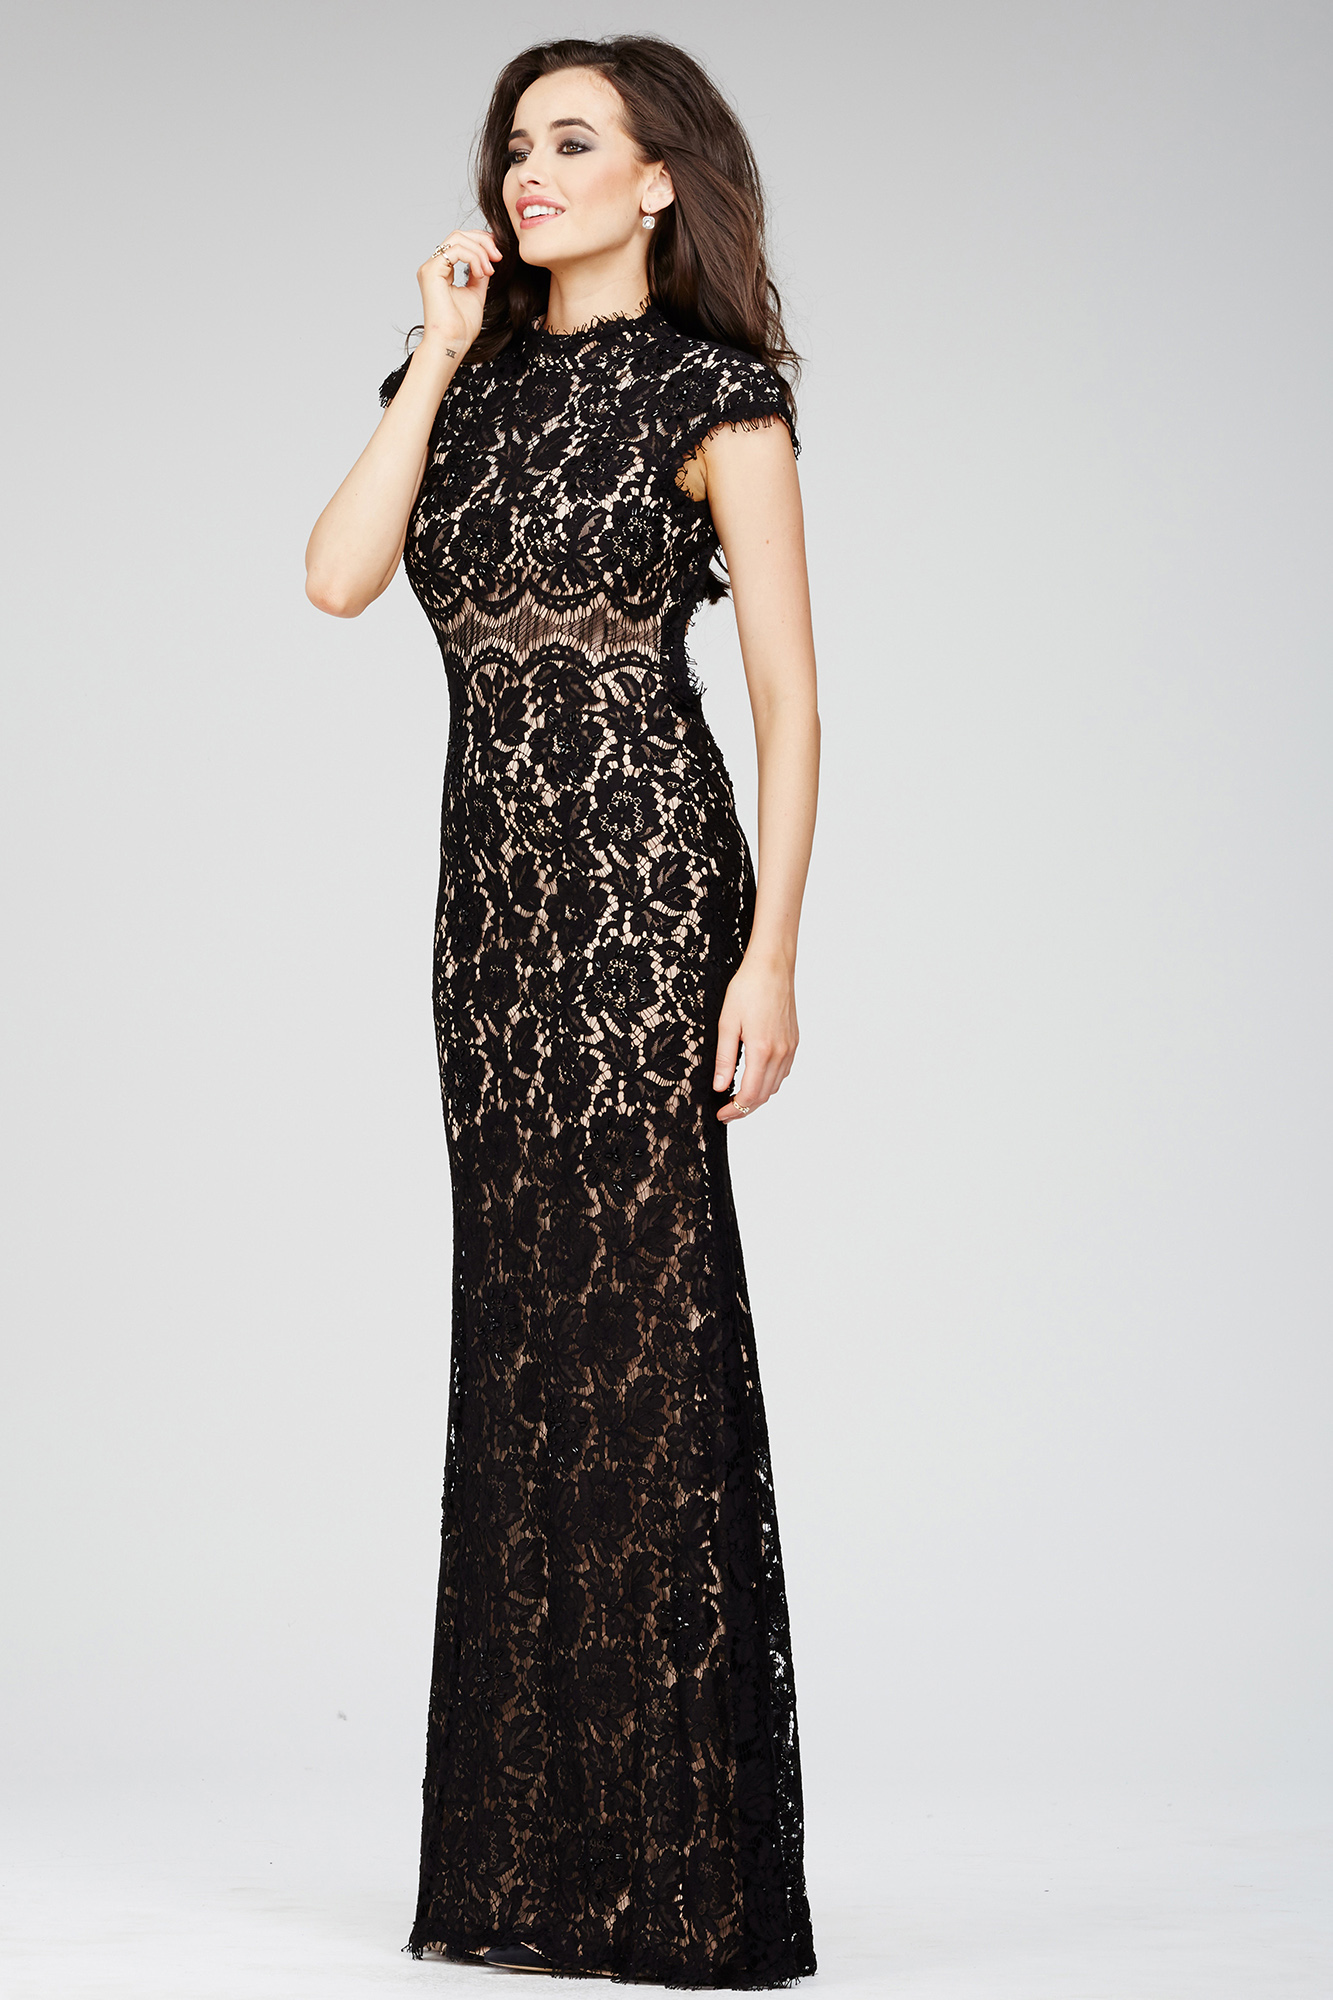 57f4279282ee Evening Dress With Lace Applique | Saddha